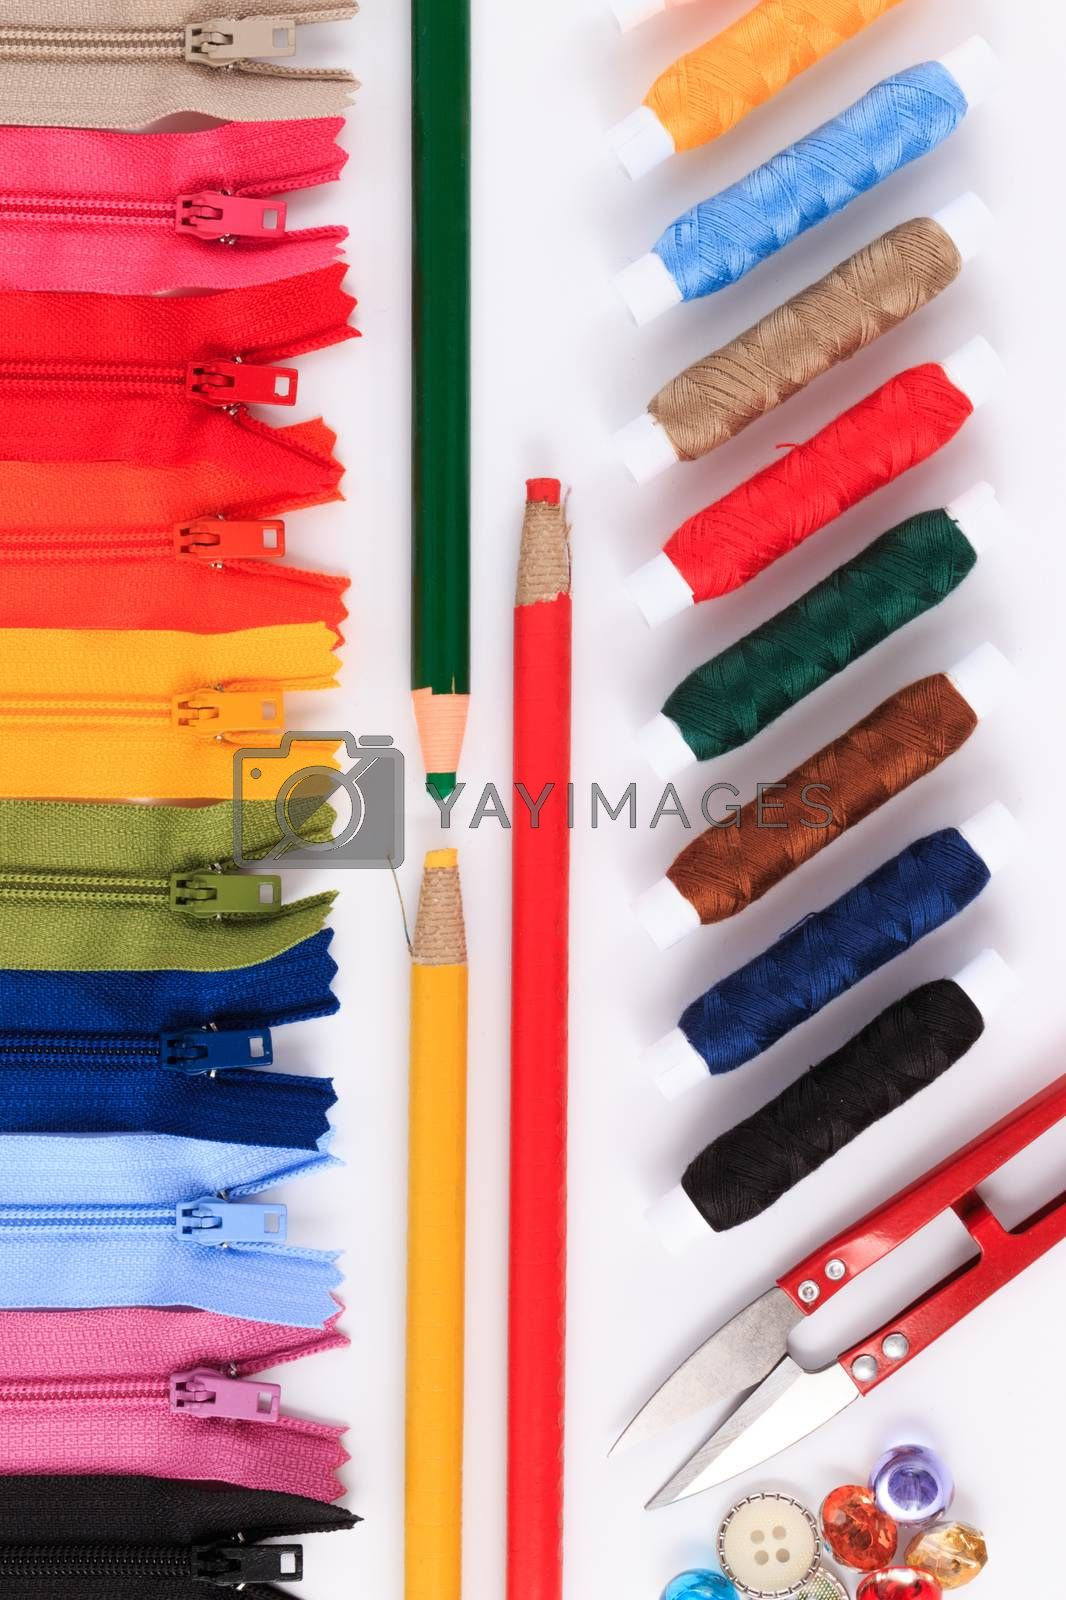 Red scissors, pencil and buttons on colorful zippers in different colors.